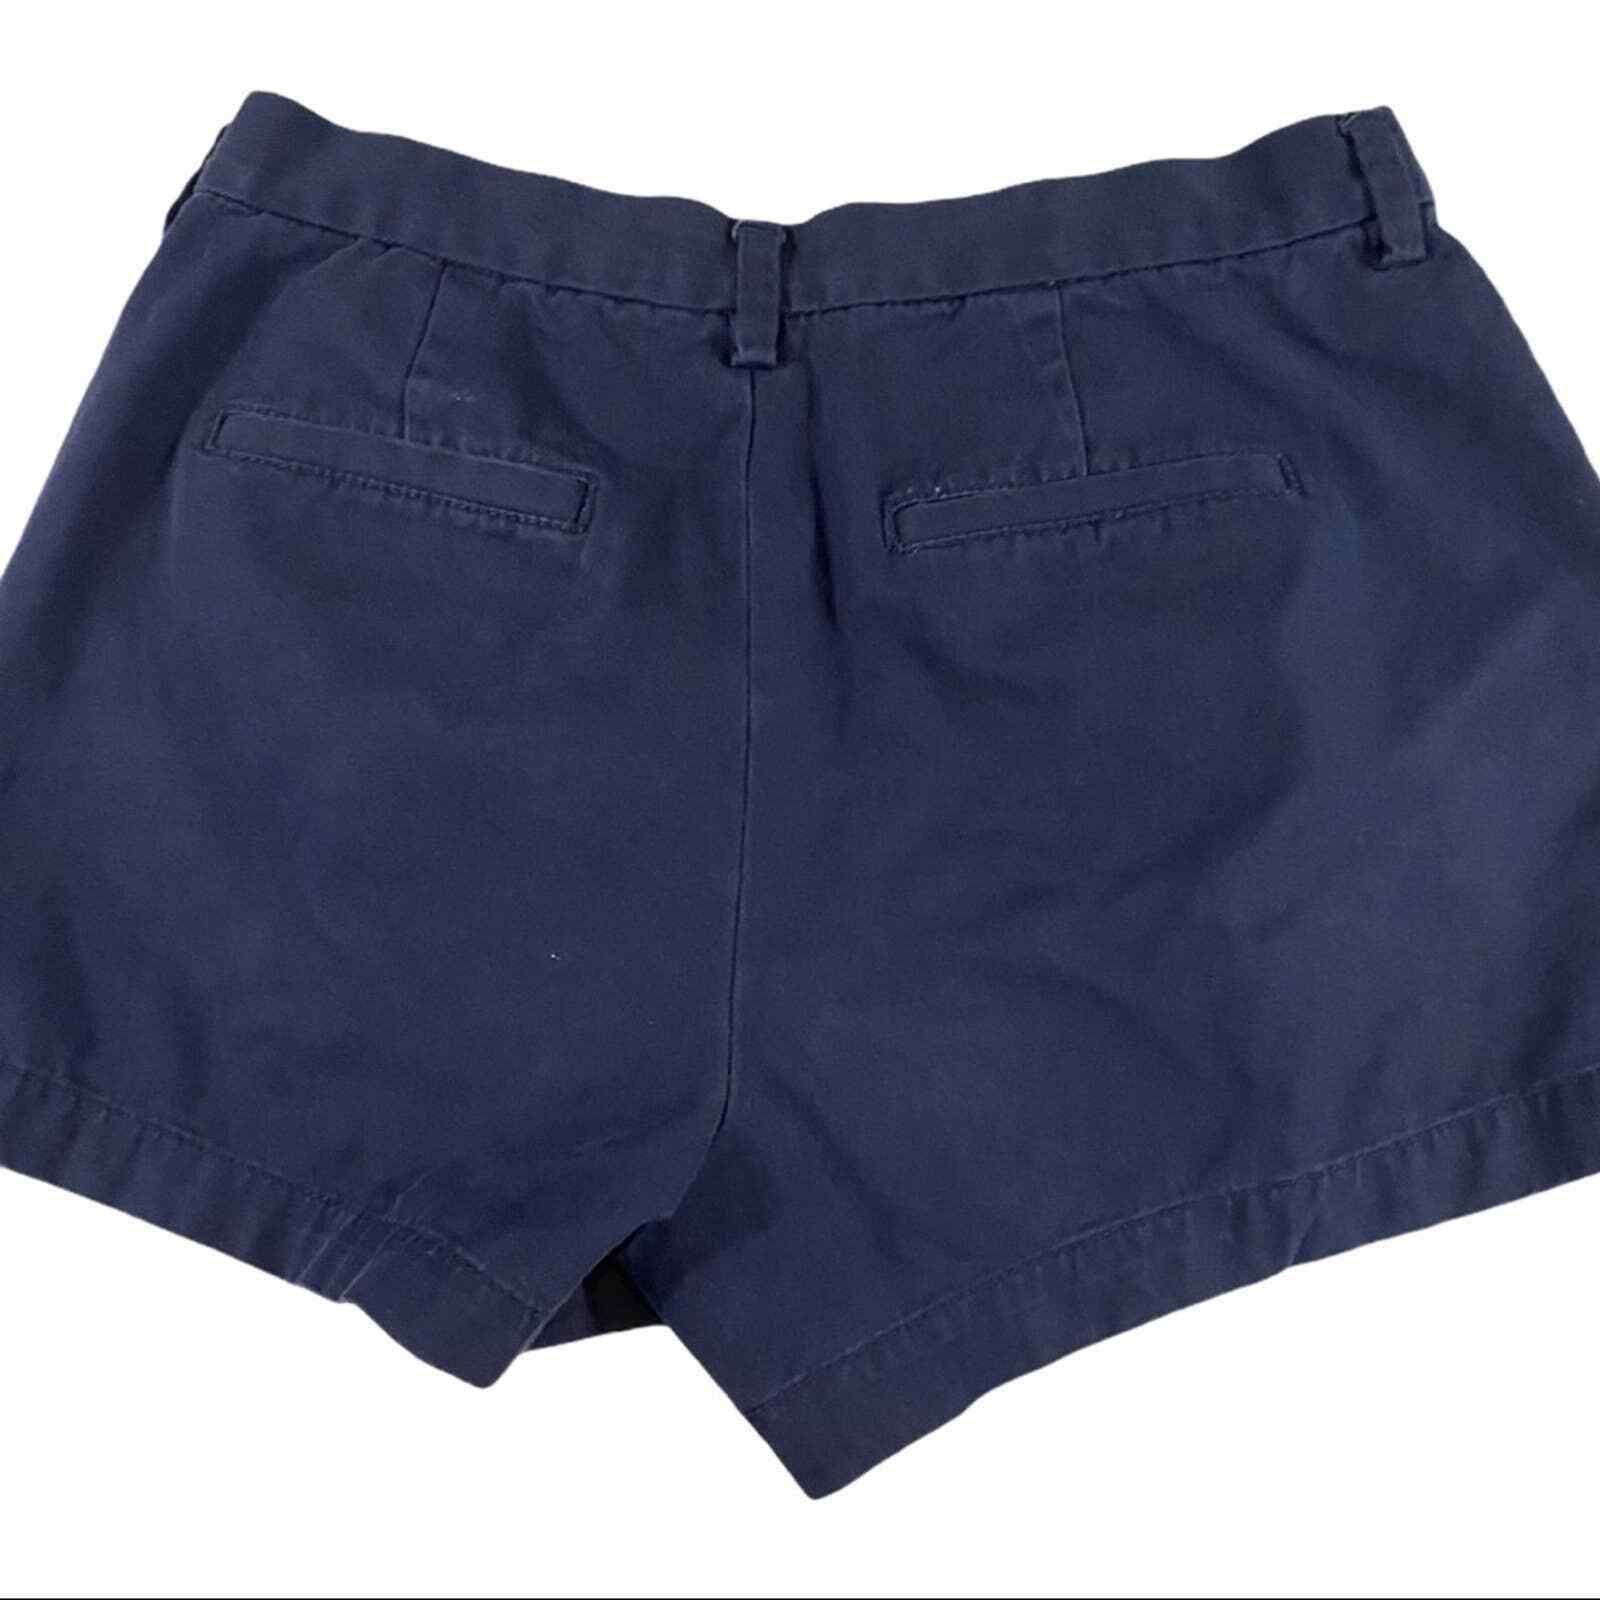 Madewell Tailored Shorts in Deep Navy 4 - image 3